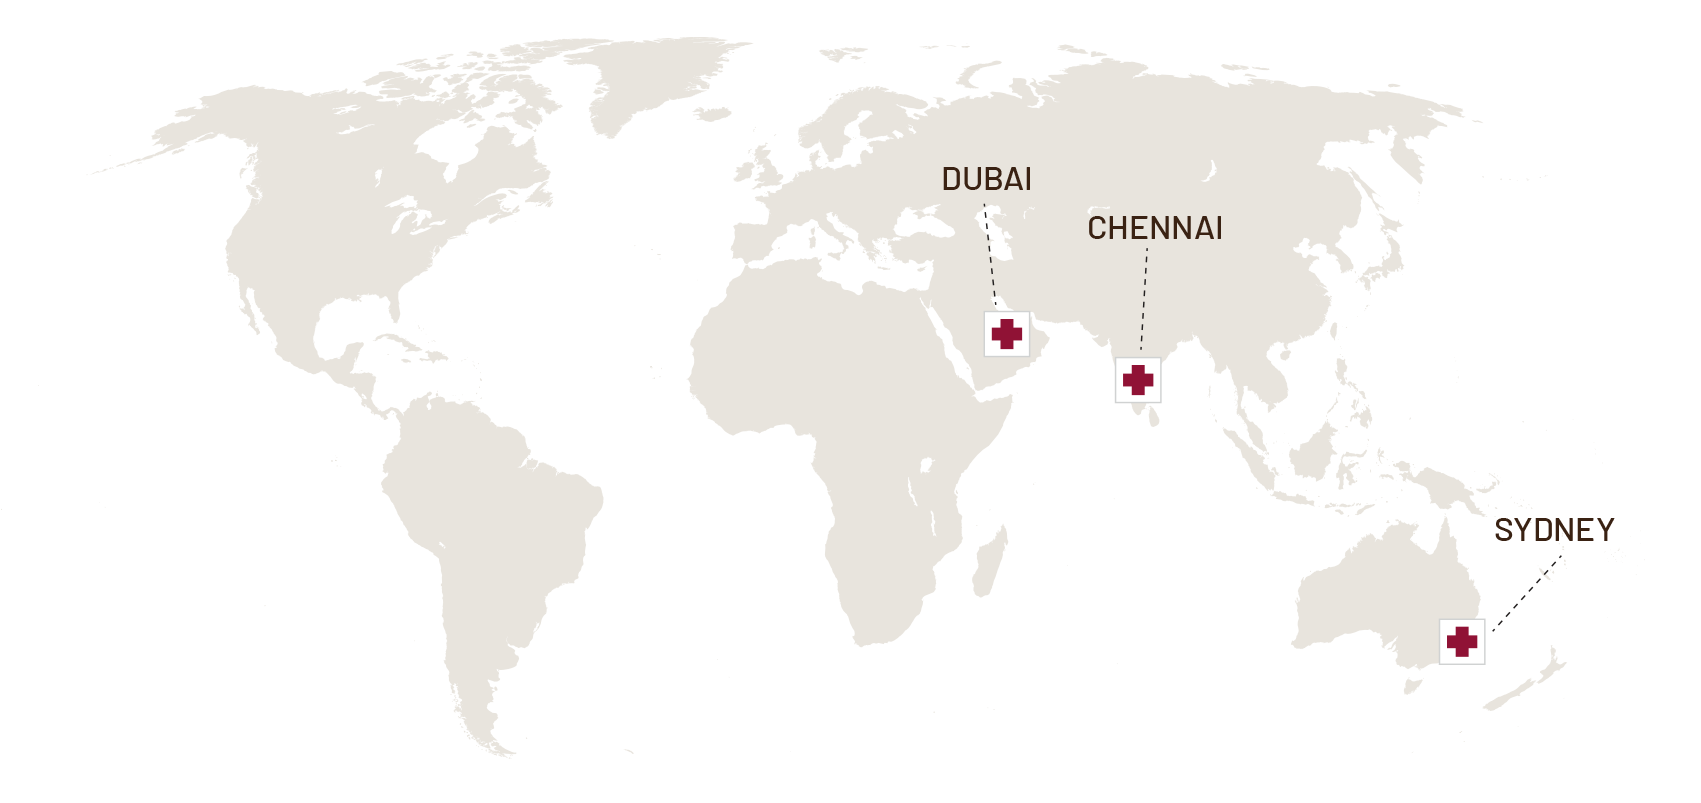 Map of the world Synapse in Dubai Chennai and Sydney